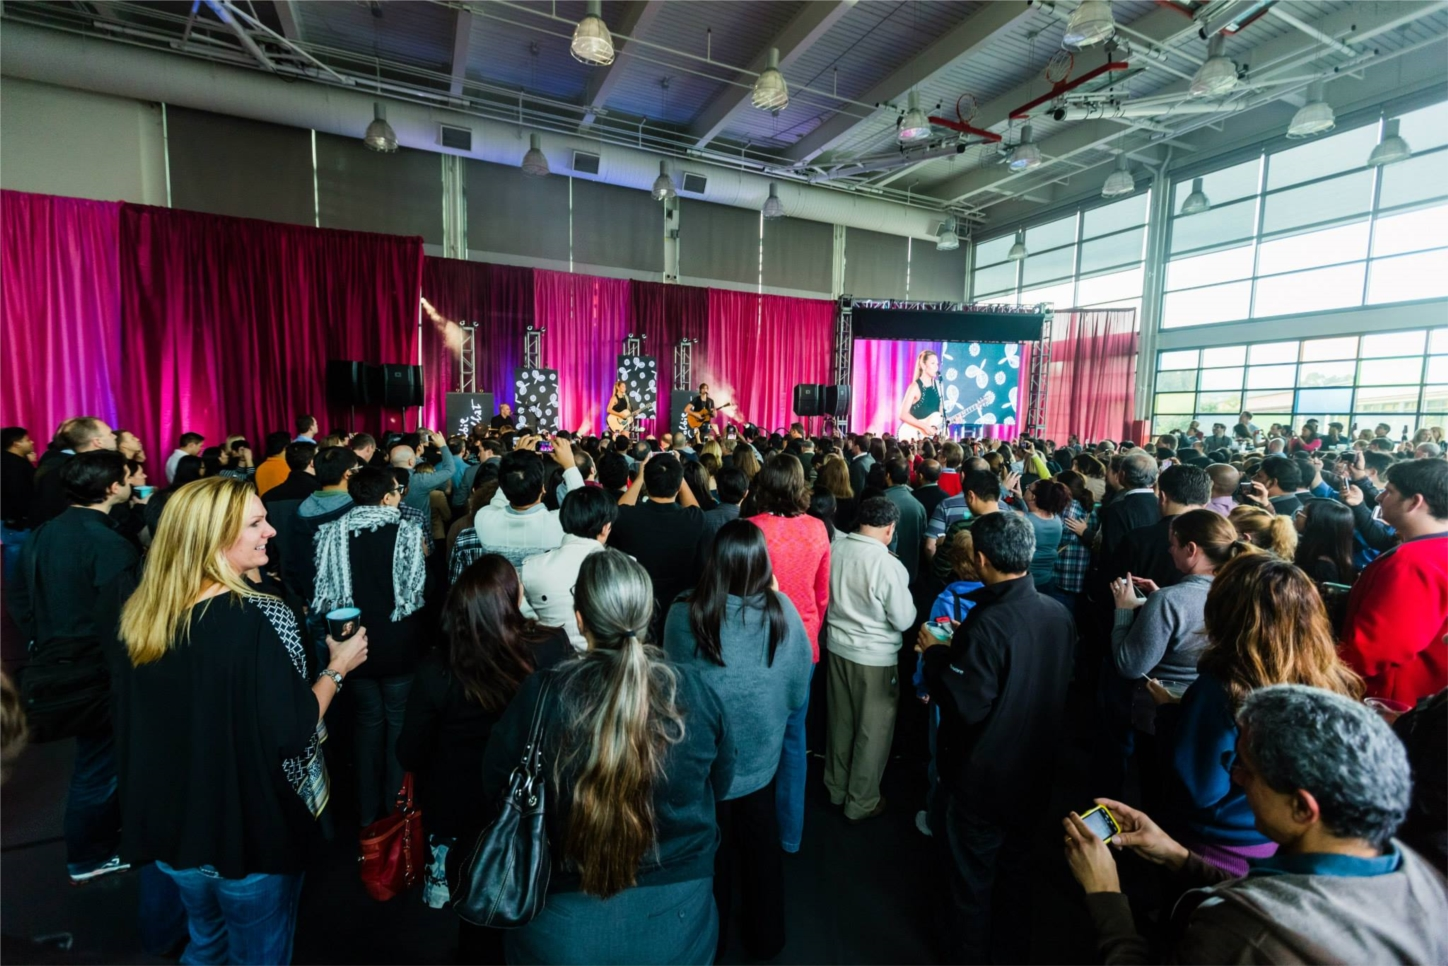 Special concerts (this one featuring Colbie Caillat) are just one of the ways we show employee appreciation and enhance each person's experience at VMware.